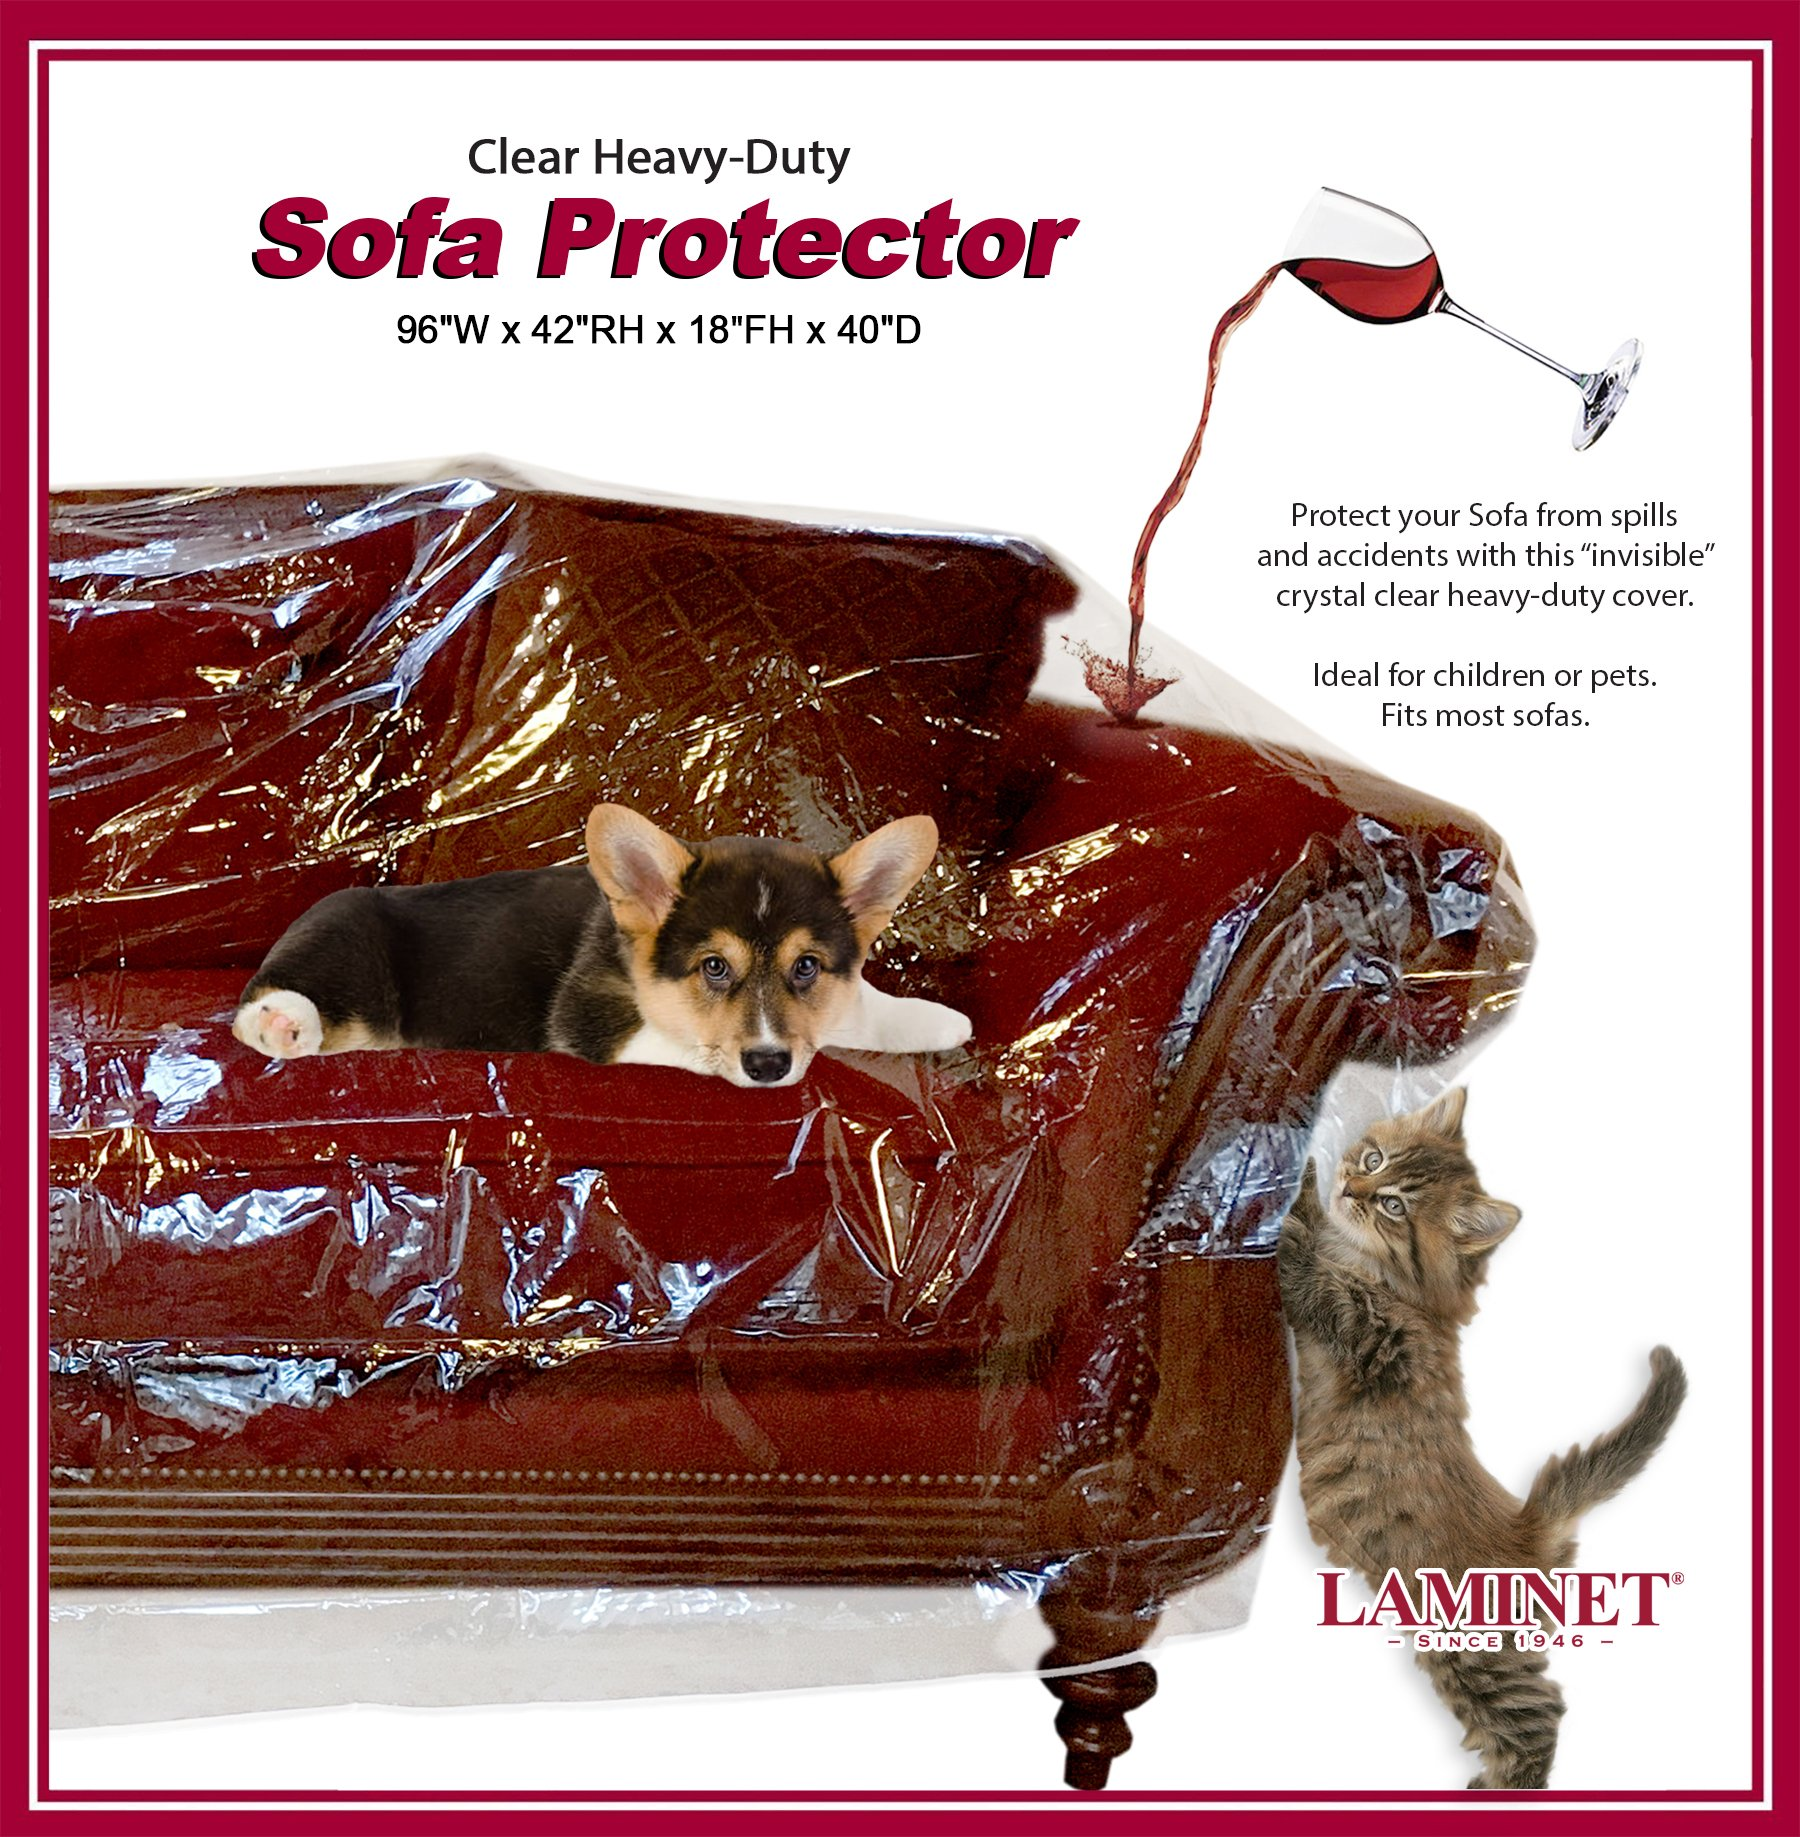 LAMINET Thick Crystal Clear Heavy-Duty Water Resistant Sofa/Couch Cover - PERFECT For Protection Against CAT/DOG Clawing, Kids and Grandkids!!!